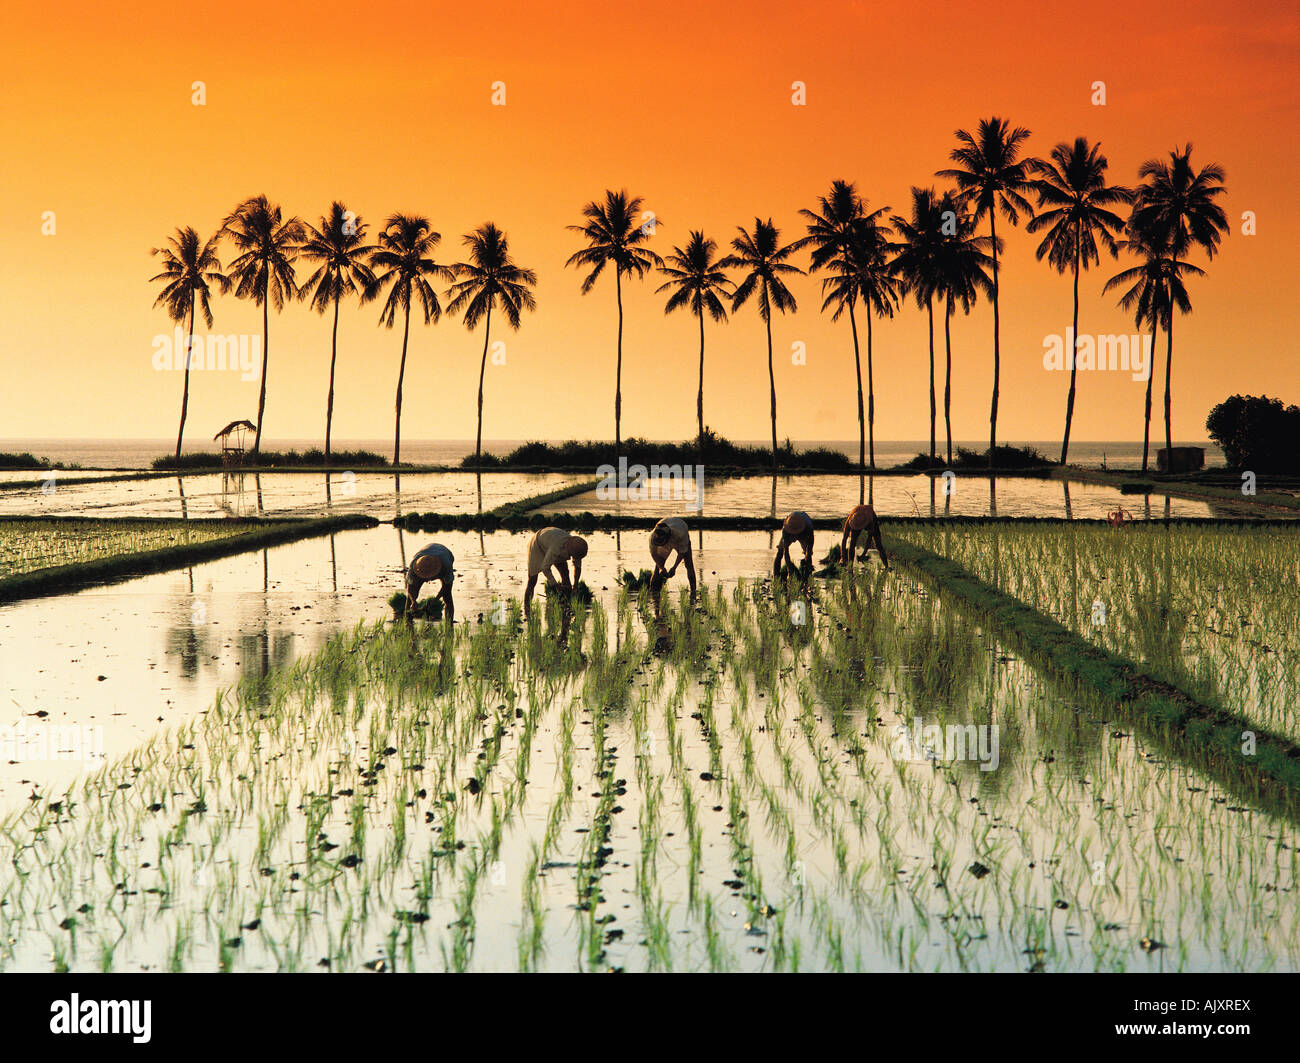 Travel, Indonesia, Bali, Agriculture, Rice paddy field workers at sunset, Kali Buk Buk, View with palms, Stock Photo